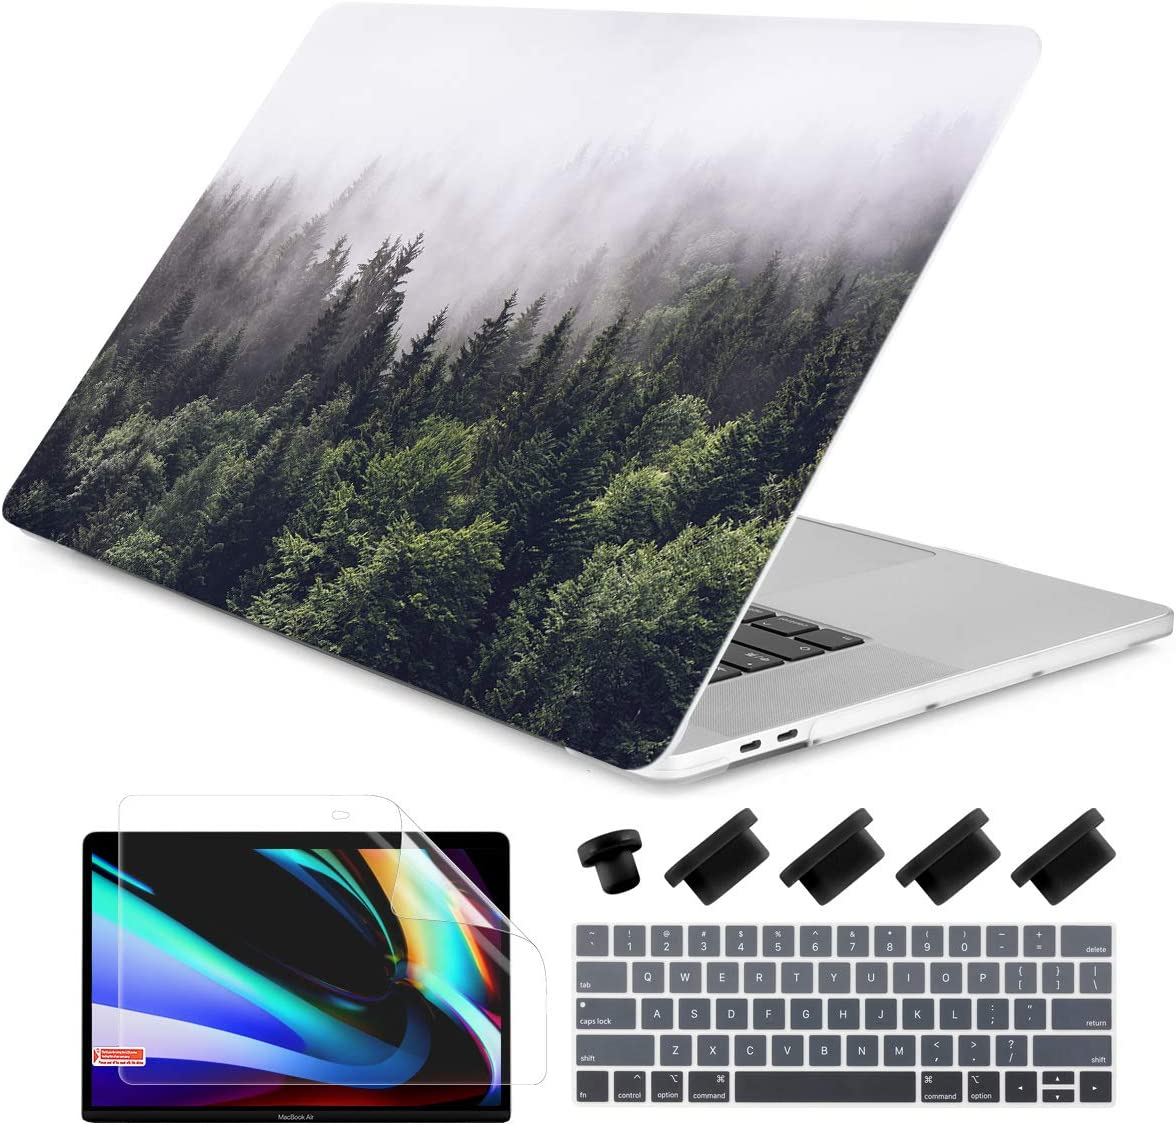 Dongke for MacBook Pro 13 Inch Case 2019 2018 2017 2016 Release A2159 A1989 A1706 A1708 with/Out Touch Bar Rubberized Frosted Matte Hard Shell Cover - Forest